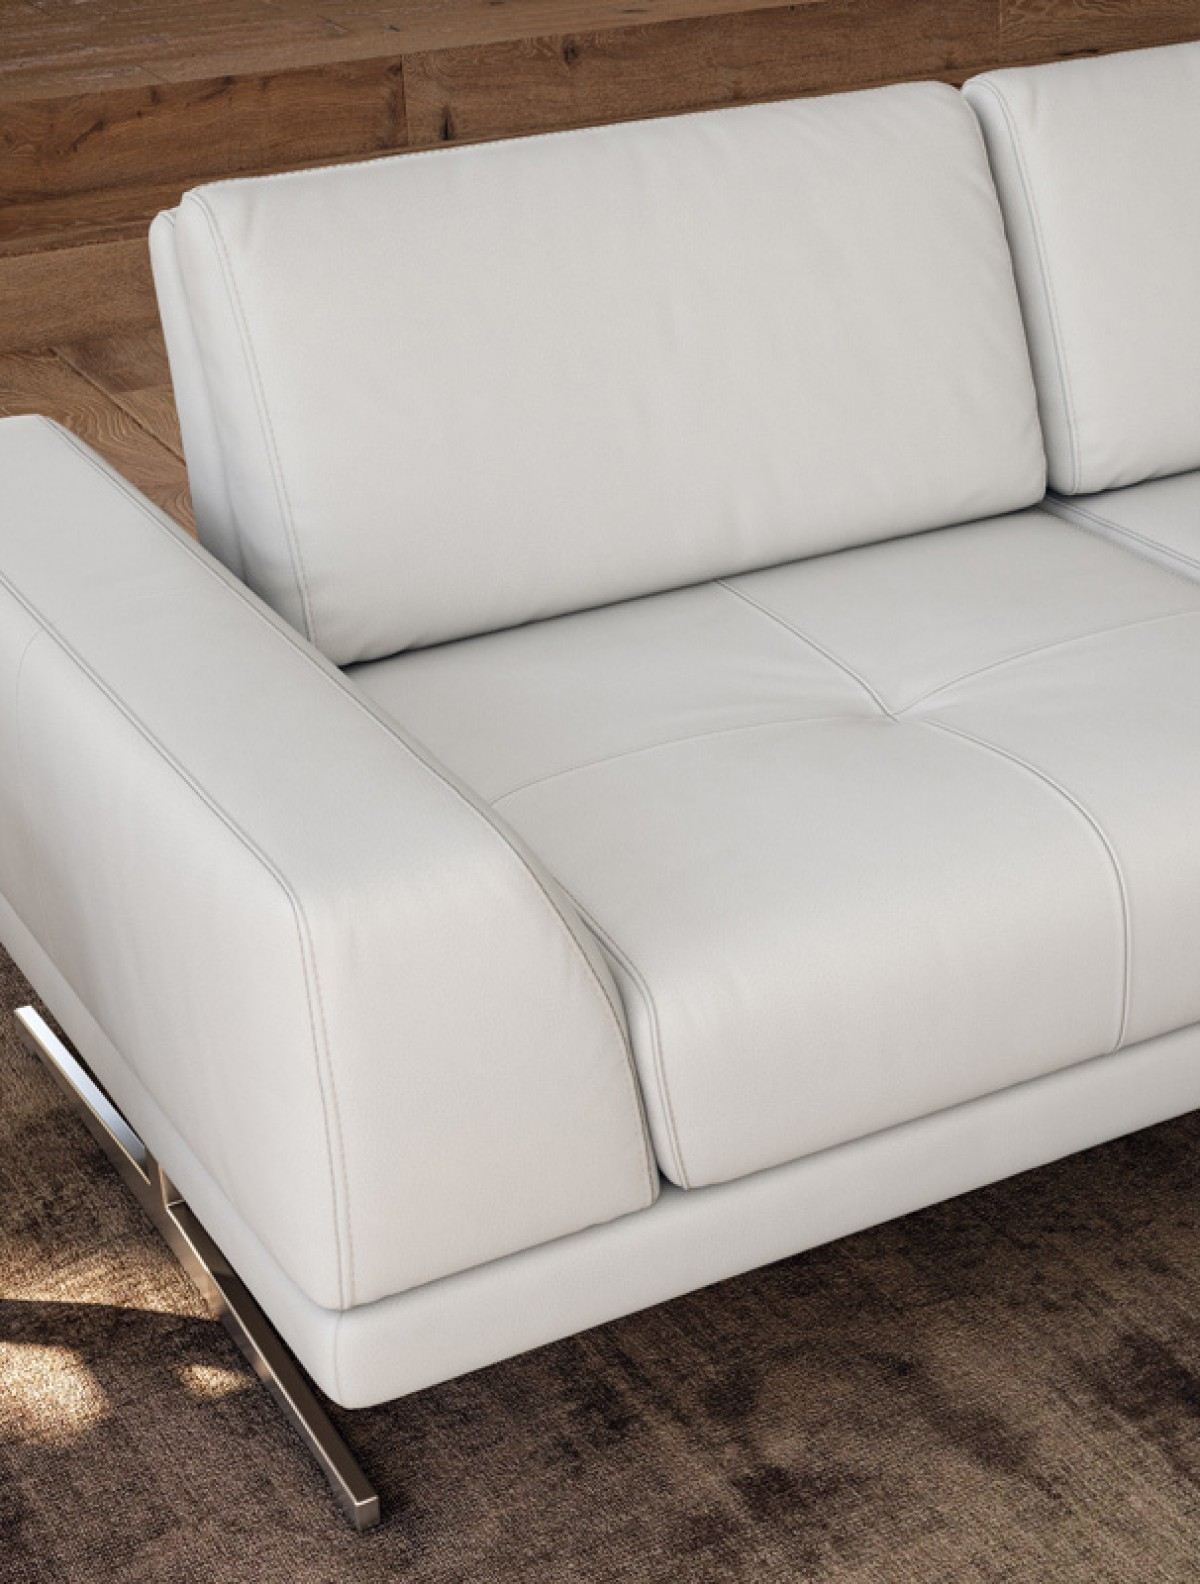 Accenti Italia Bellagio Italian Modern White Leather